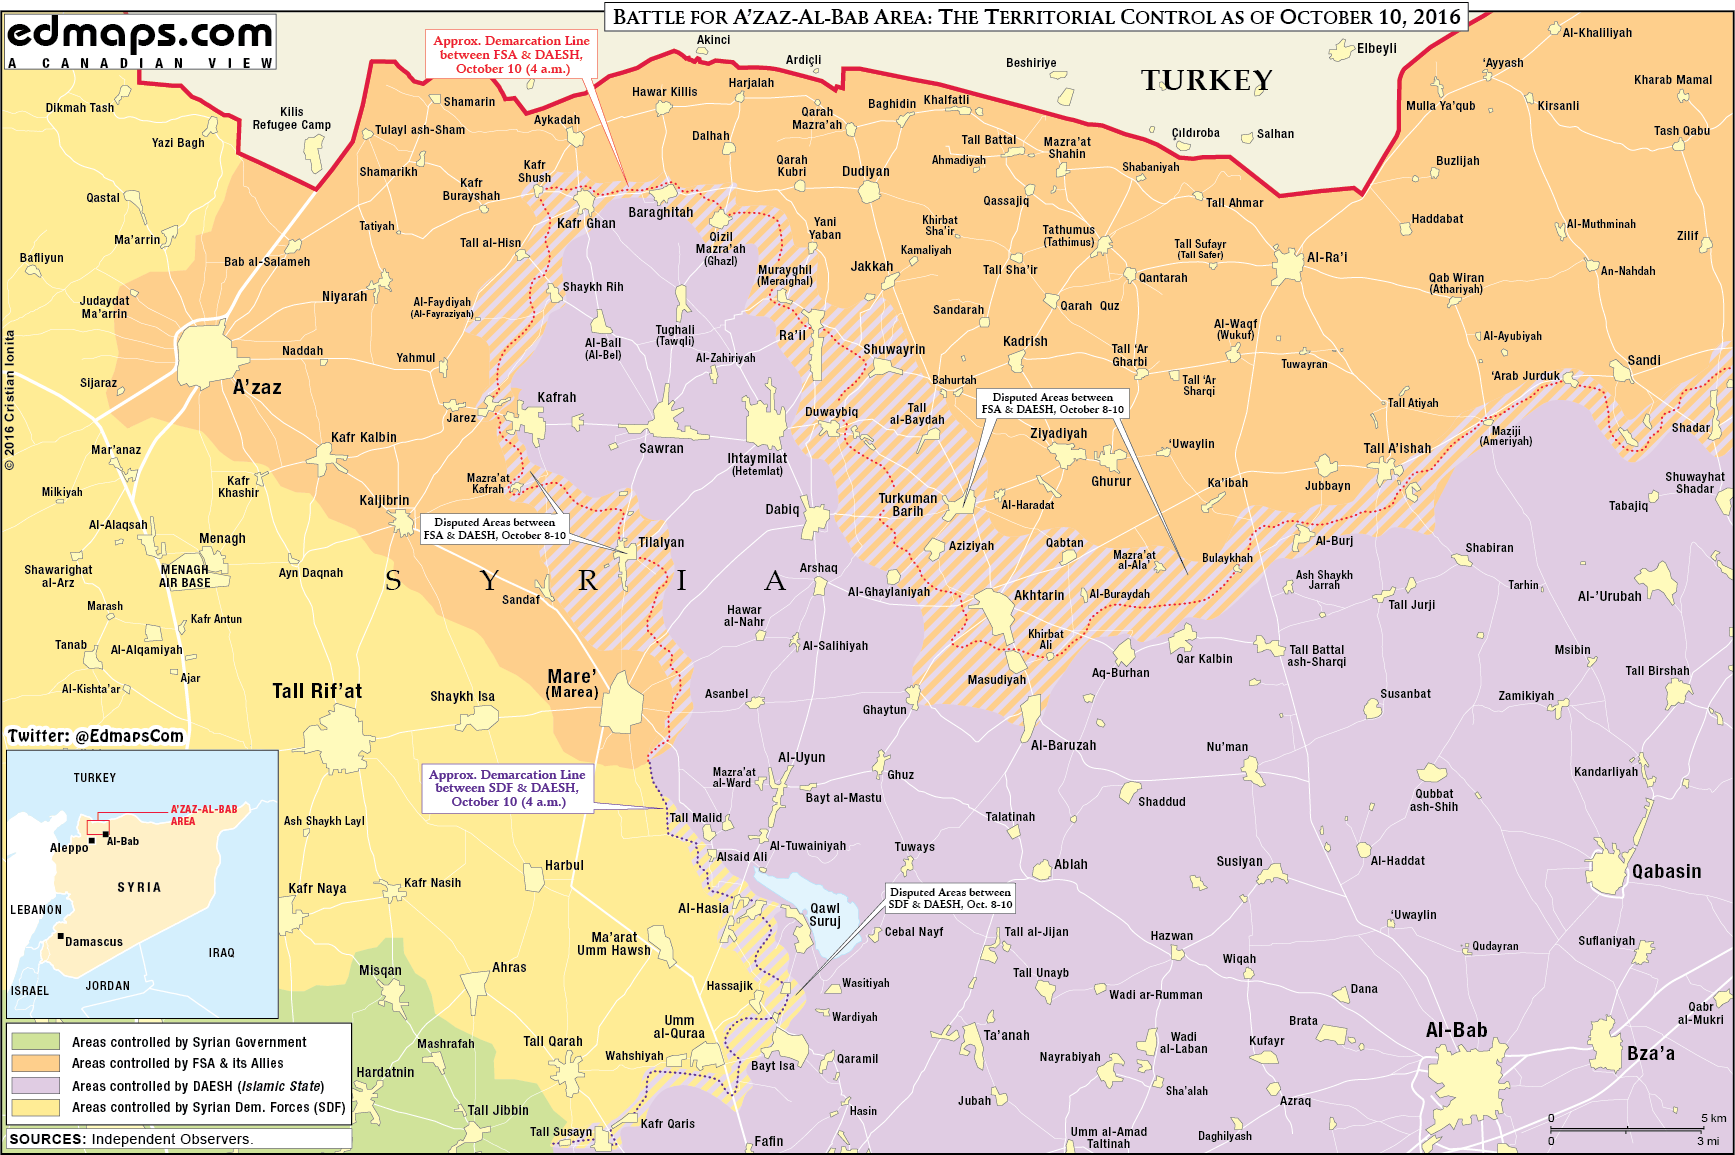 Military Situation in the Area of Azaz, Syria on October 10, 2016